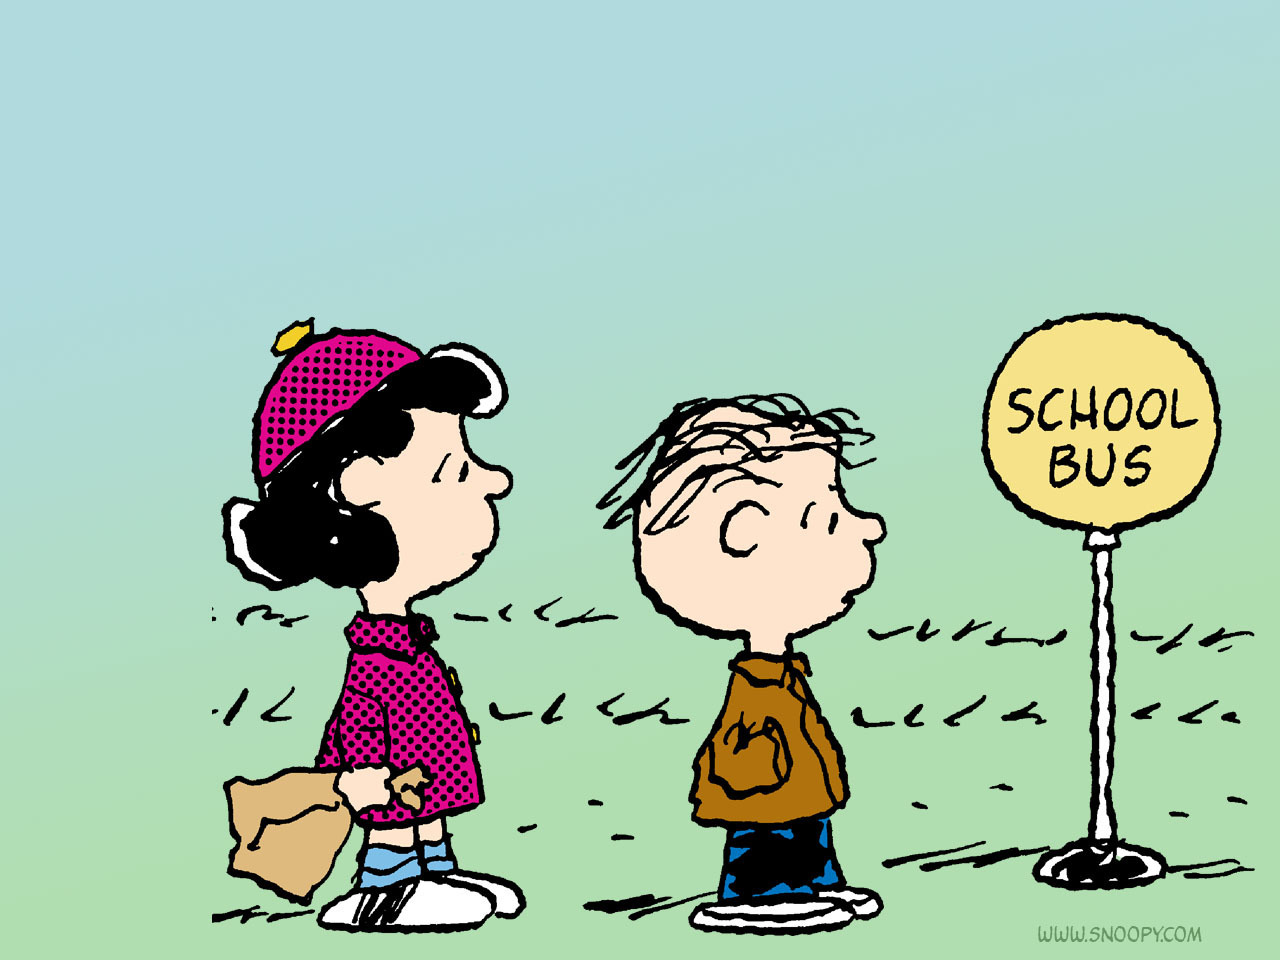 school bus linus and lucy - Peanuts Wallpaper (6273388) - Fanpop